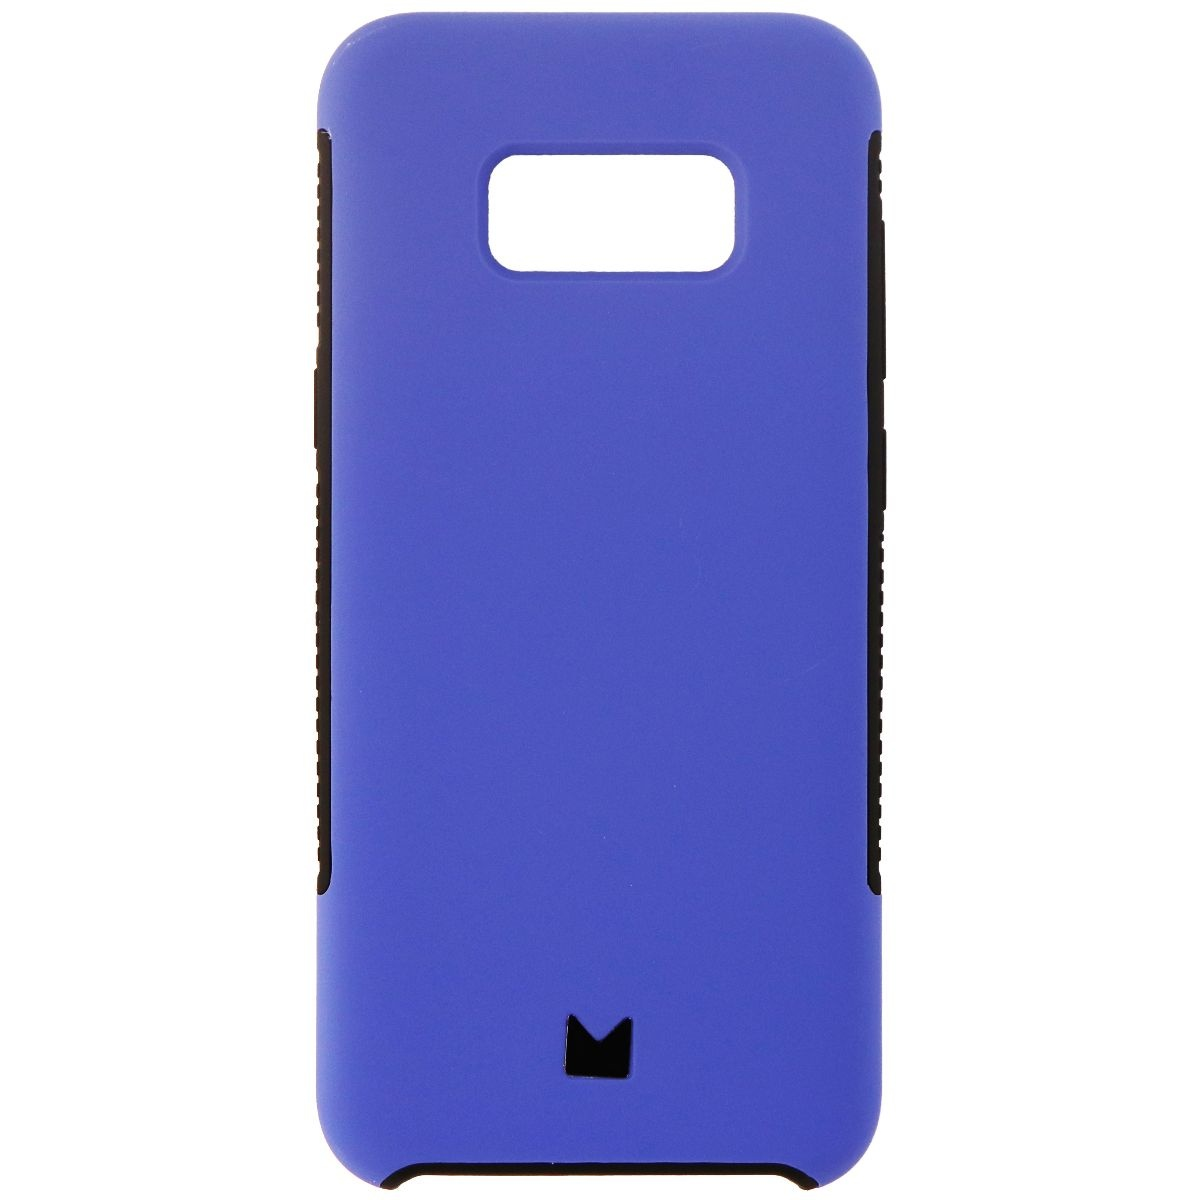 Modal Dual Layer Series Protective Case for Samsung Galaxy S8 - Matte Blue/Black